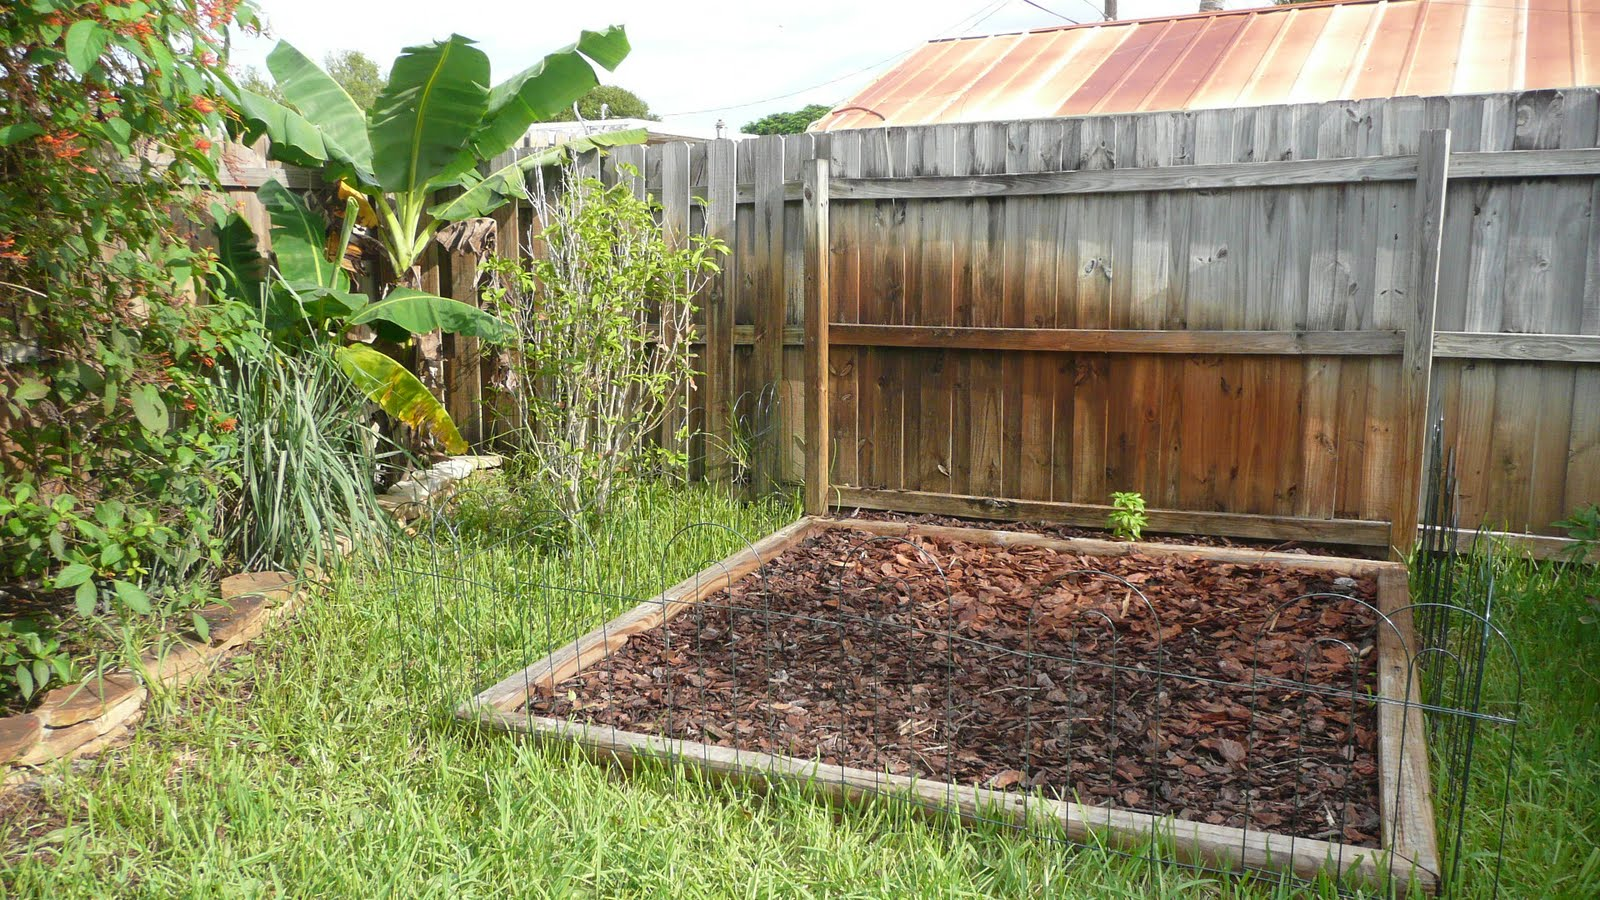 Florida Vegetable Gardening